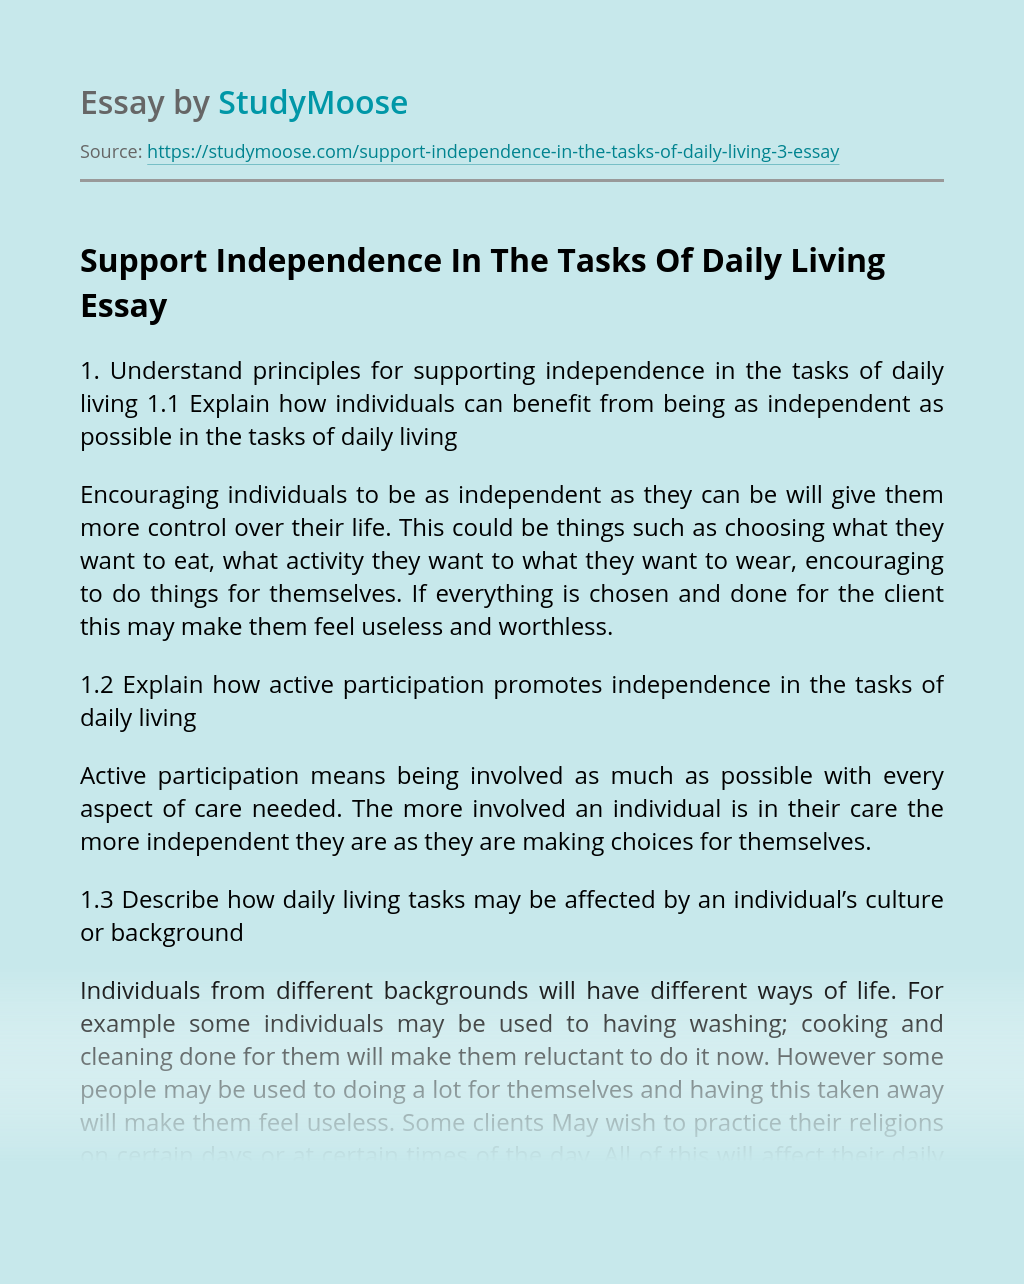 Support Independence In The Tasks Of Daily Living